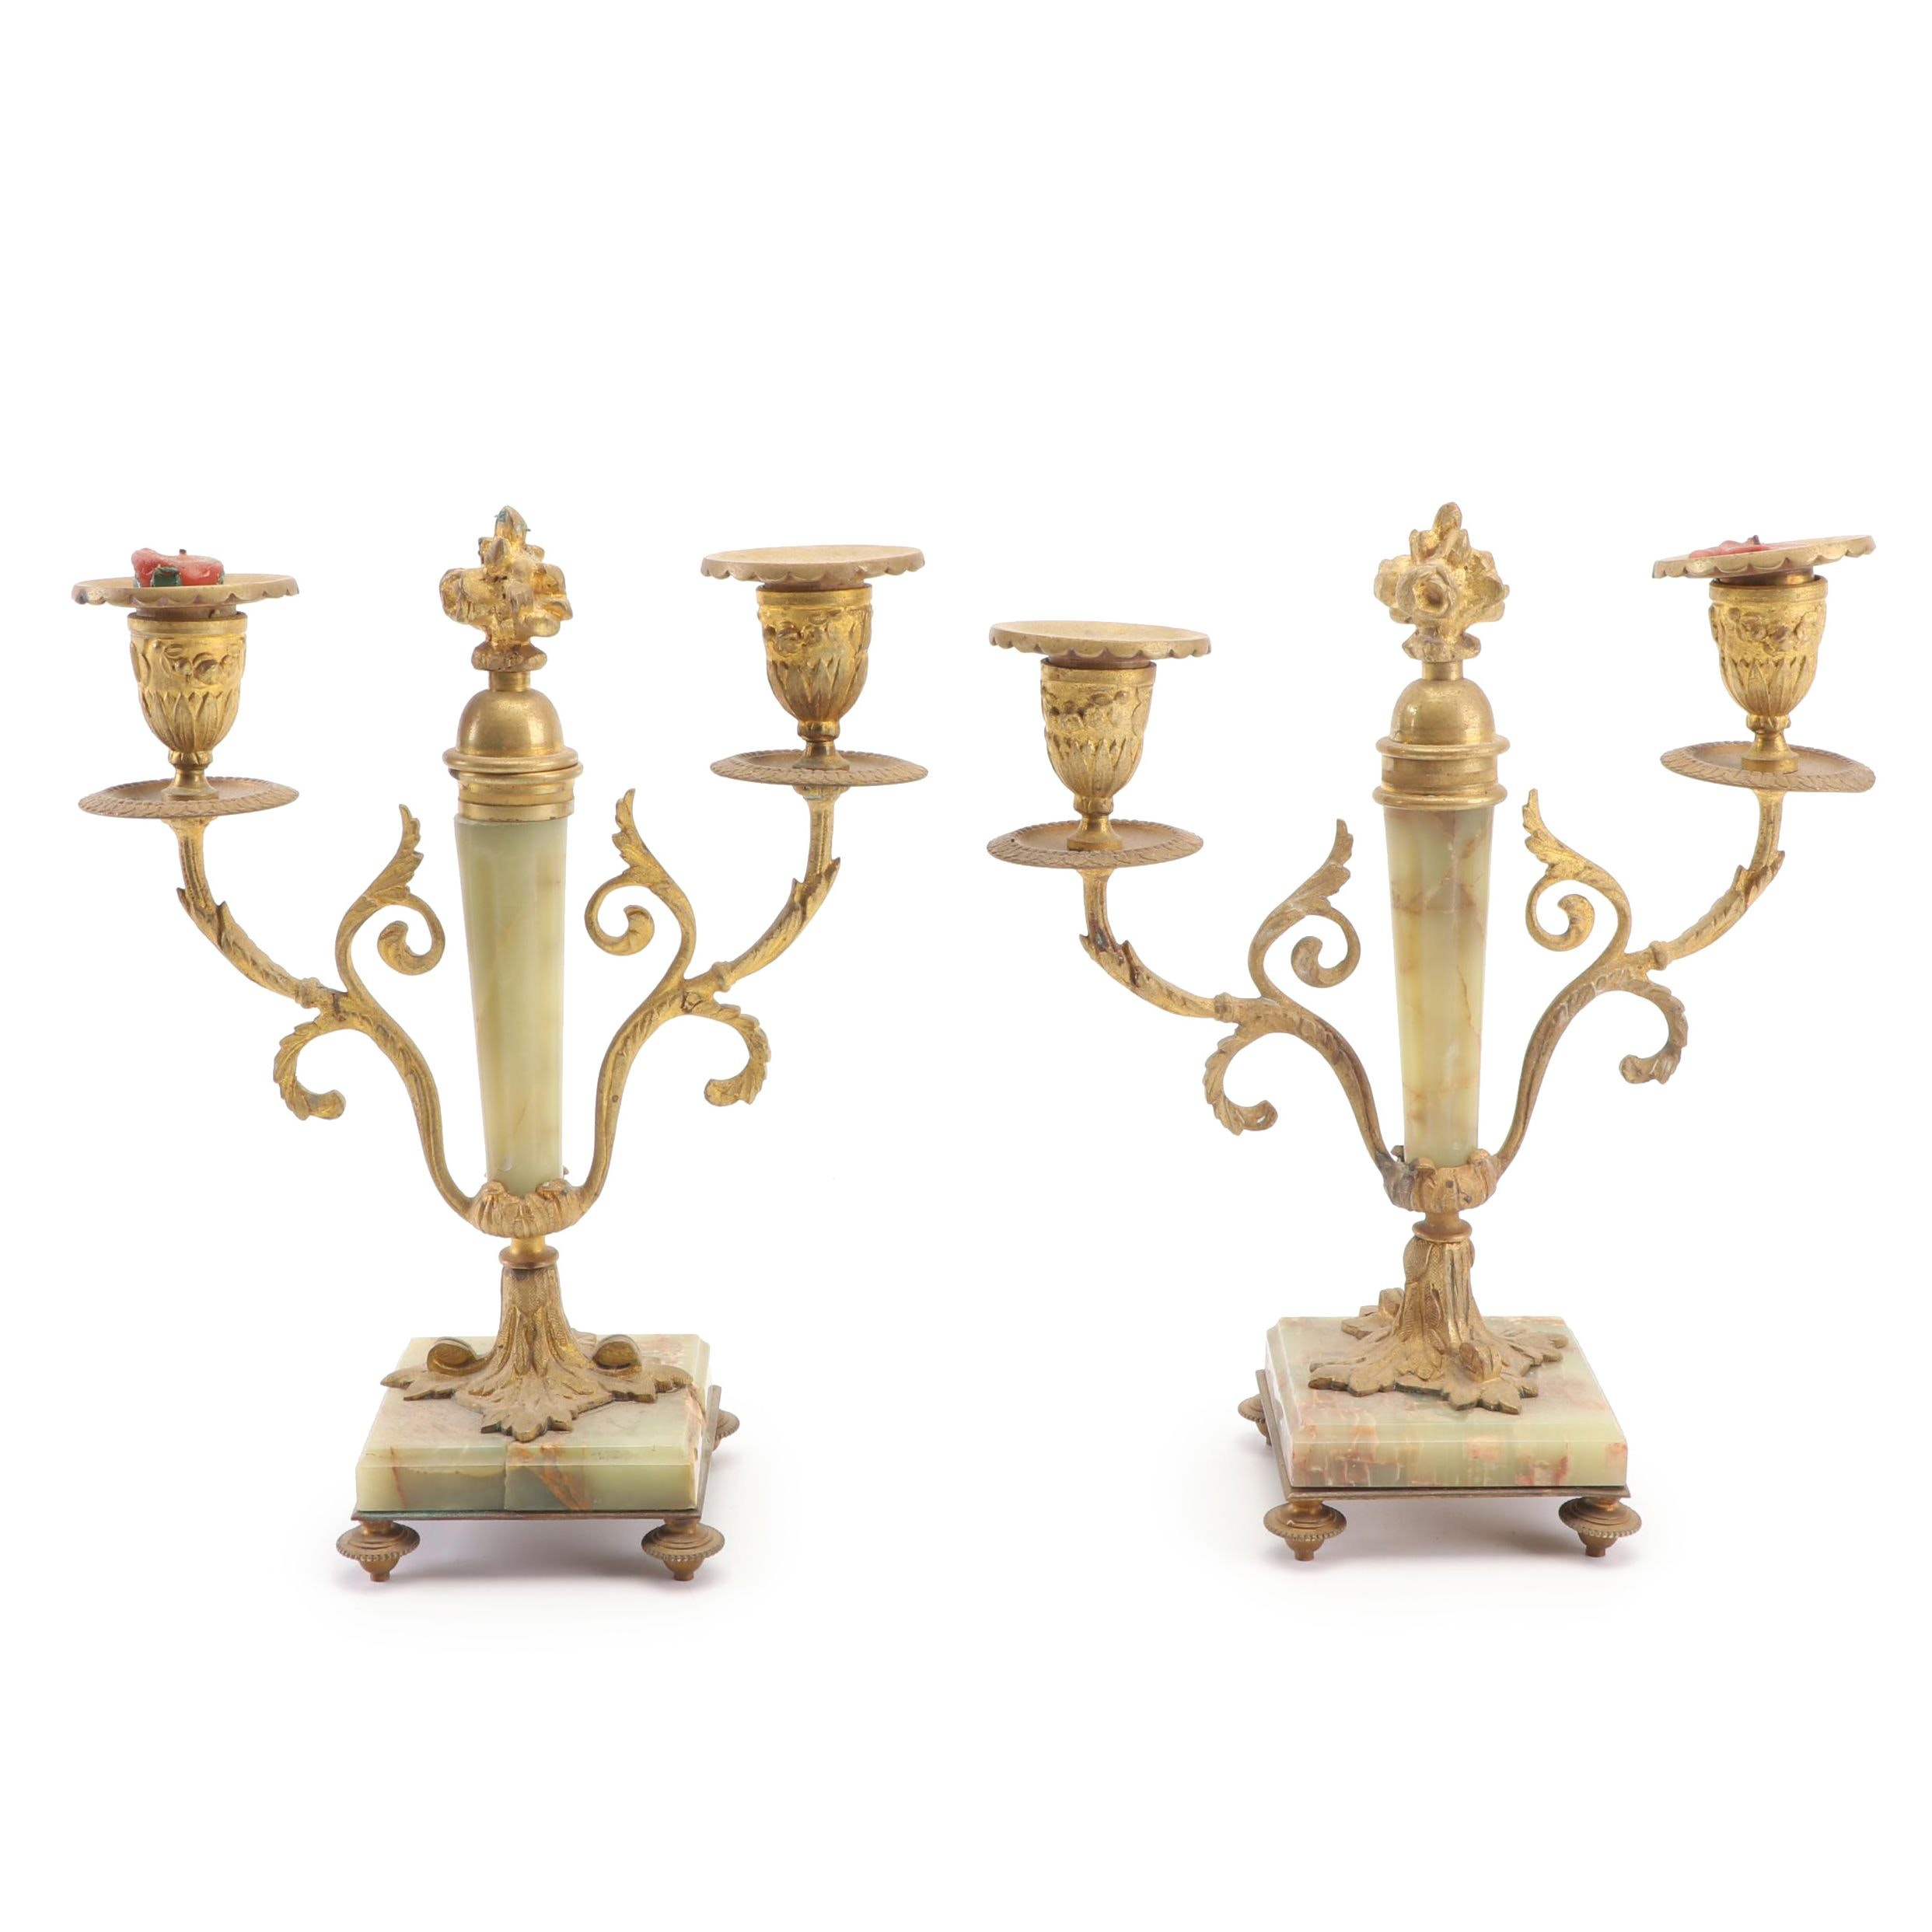 Brass and Agate Candelabra, Late 19th to Early 20th Century